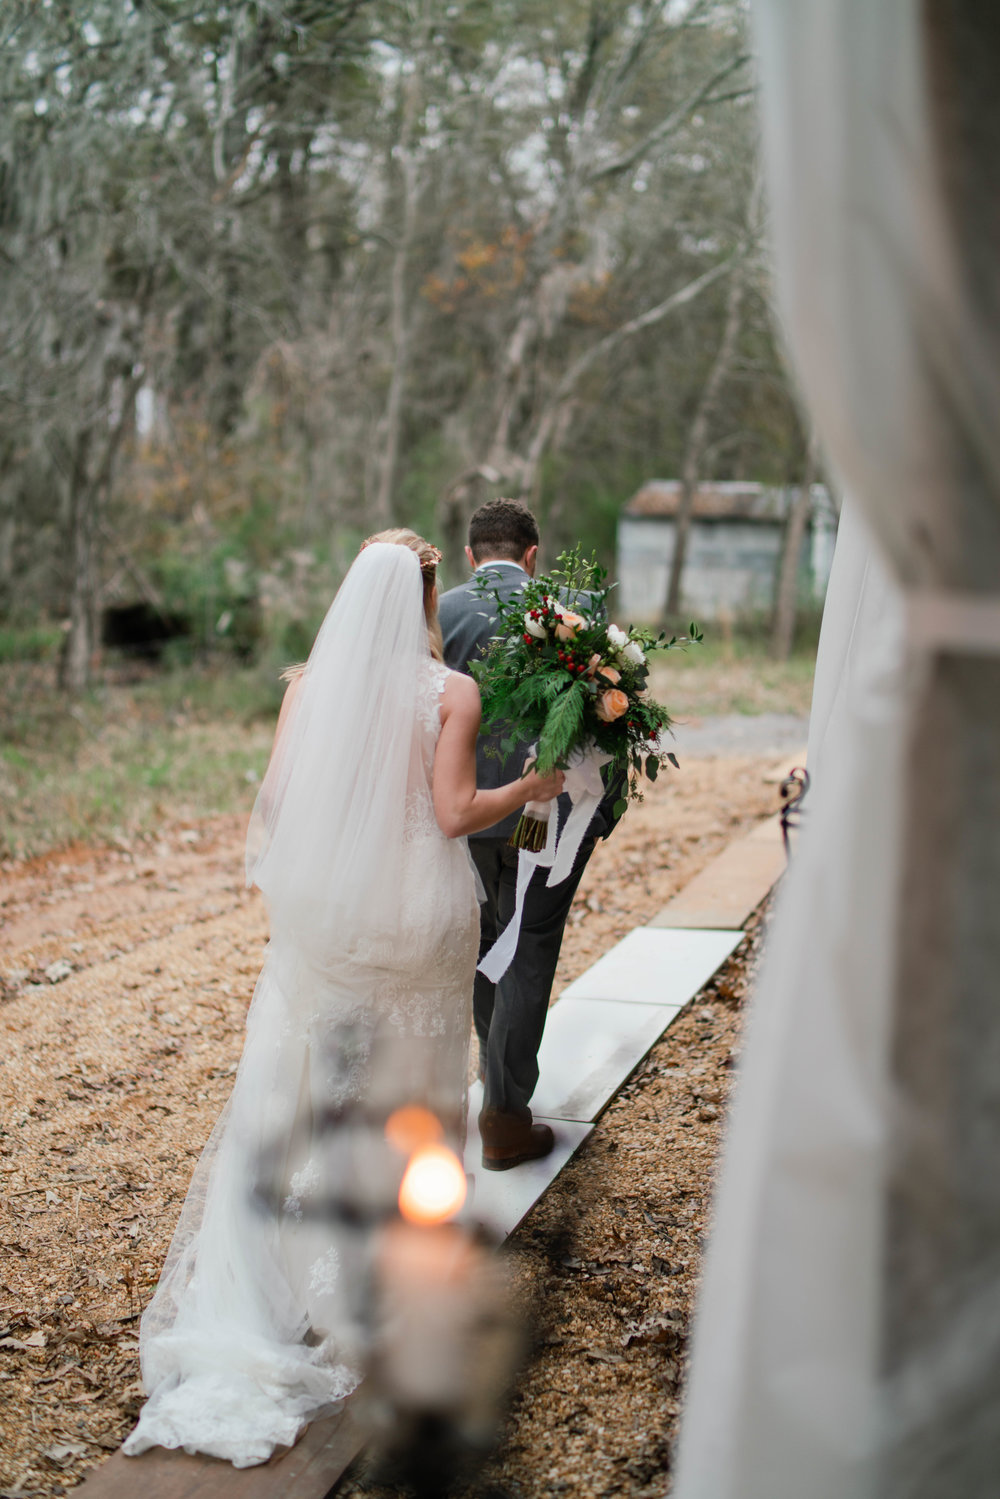 Matty-Drollette-Wedding-Photography-Alabama-77.jpg